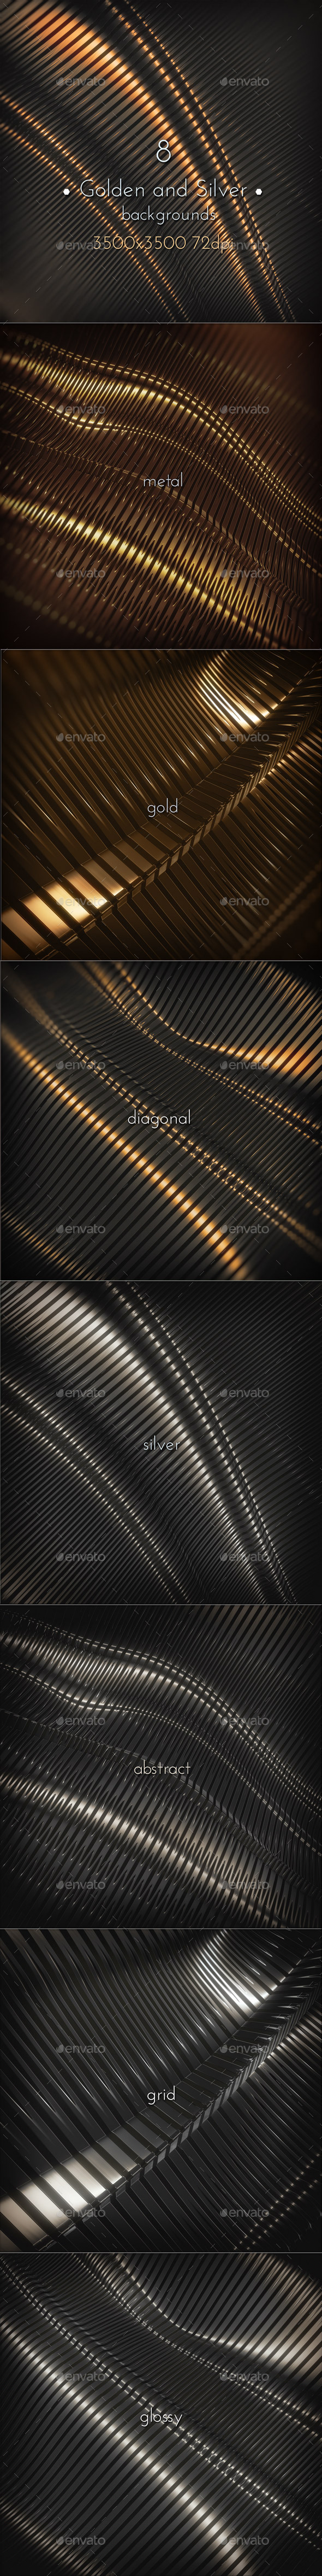 Golden and Silver Metal Surface - 3D Backgrounds